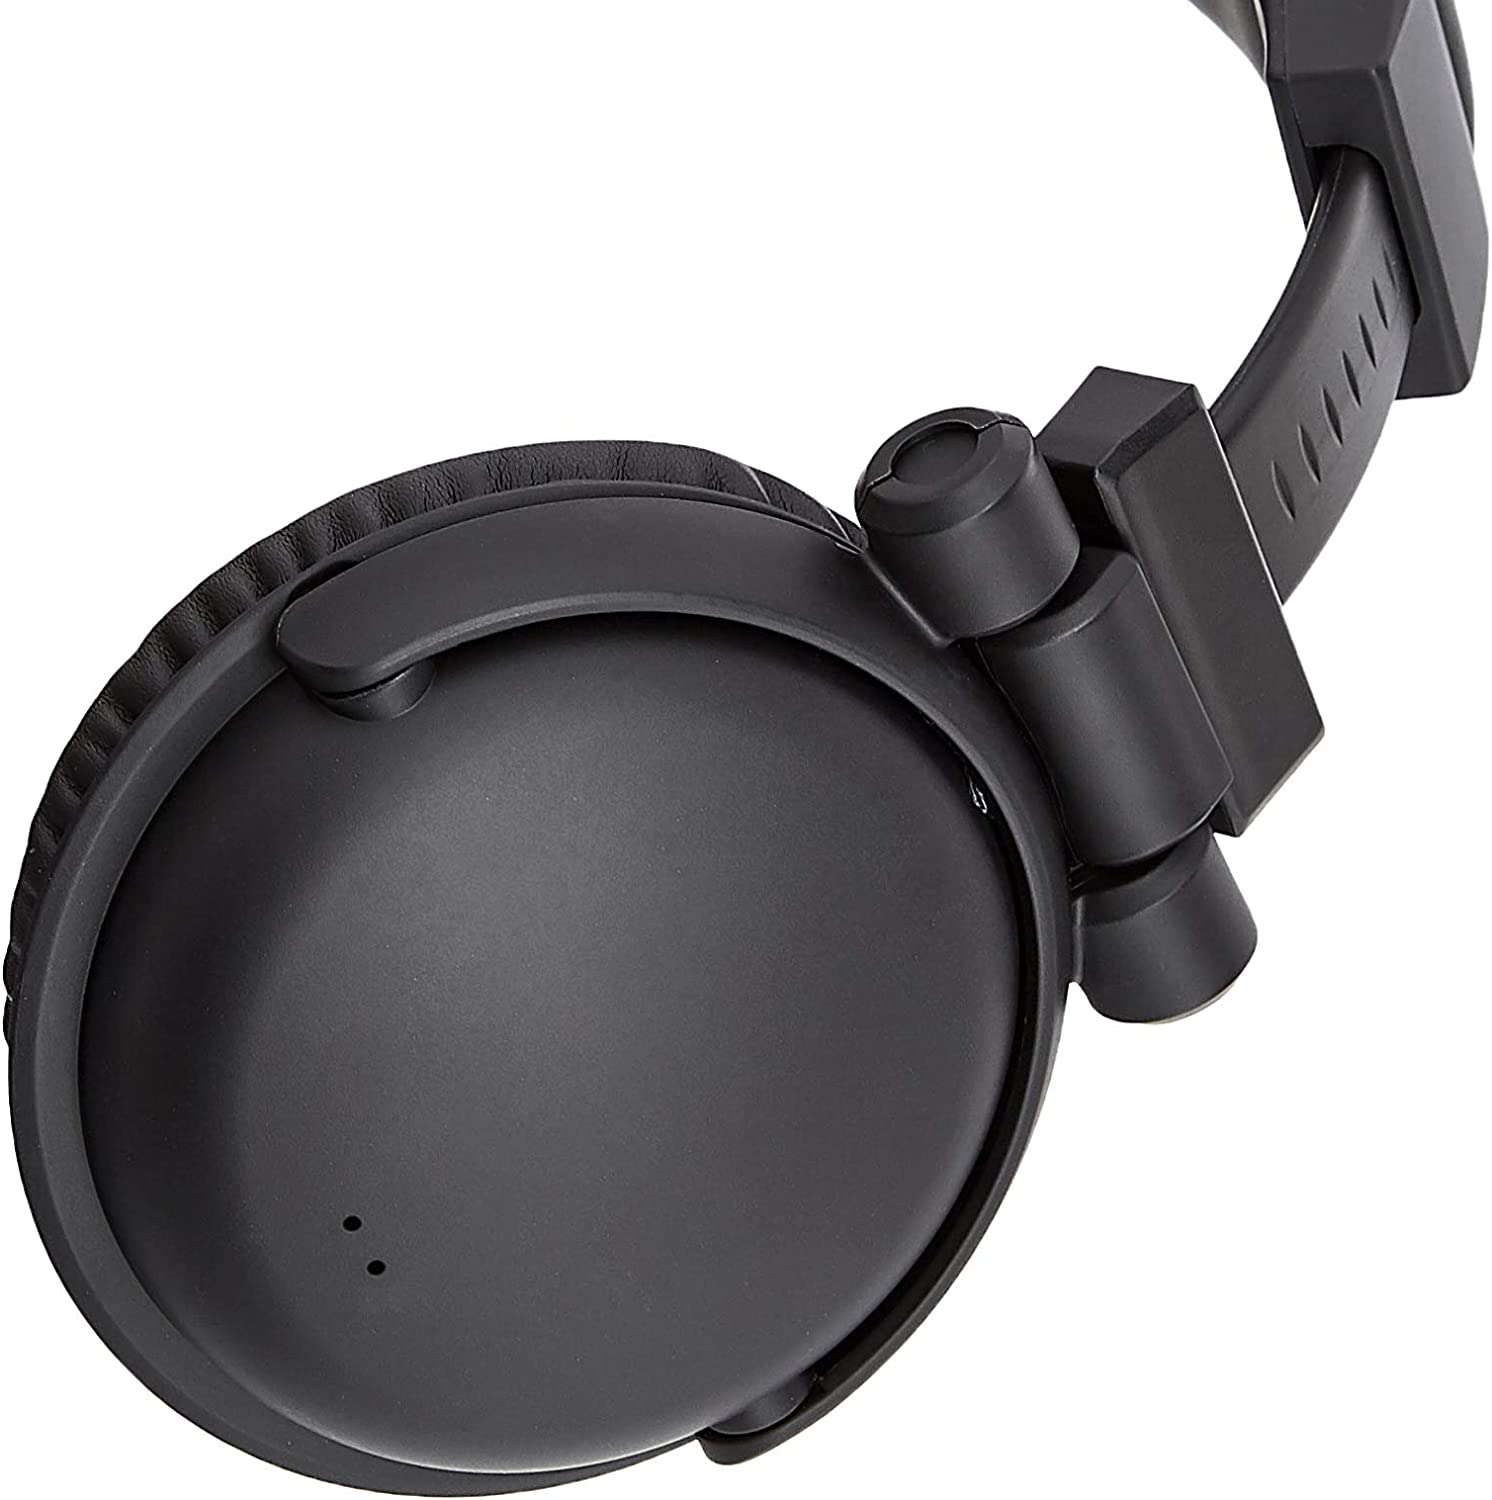 Basics Over-Ear Hi-Fi Foldable and Adjustable USB Headset with Mic and Mute